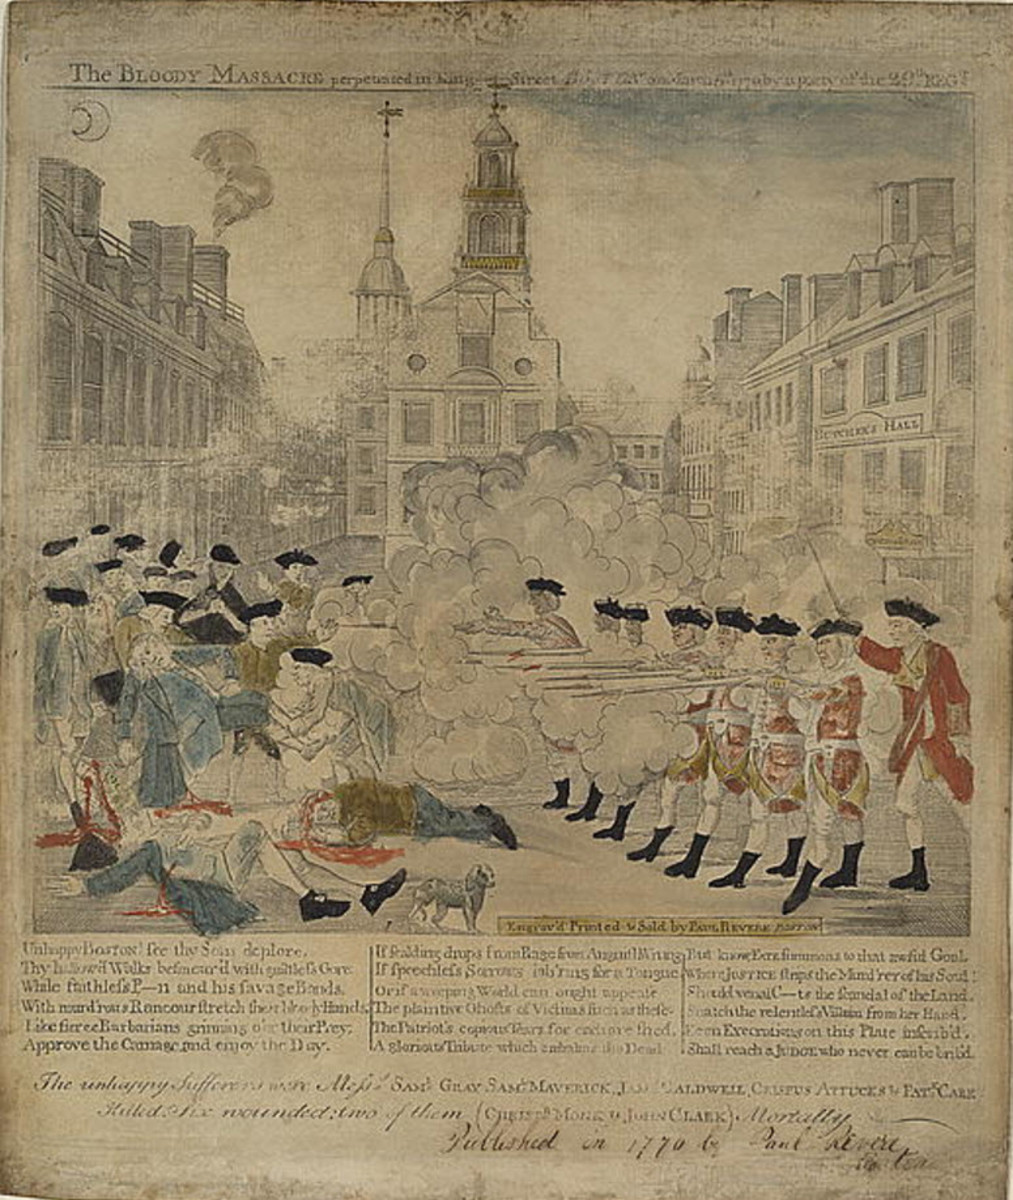 Boston Massacre Engraving Courtesy Library of Congress